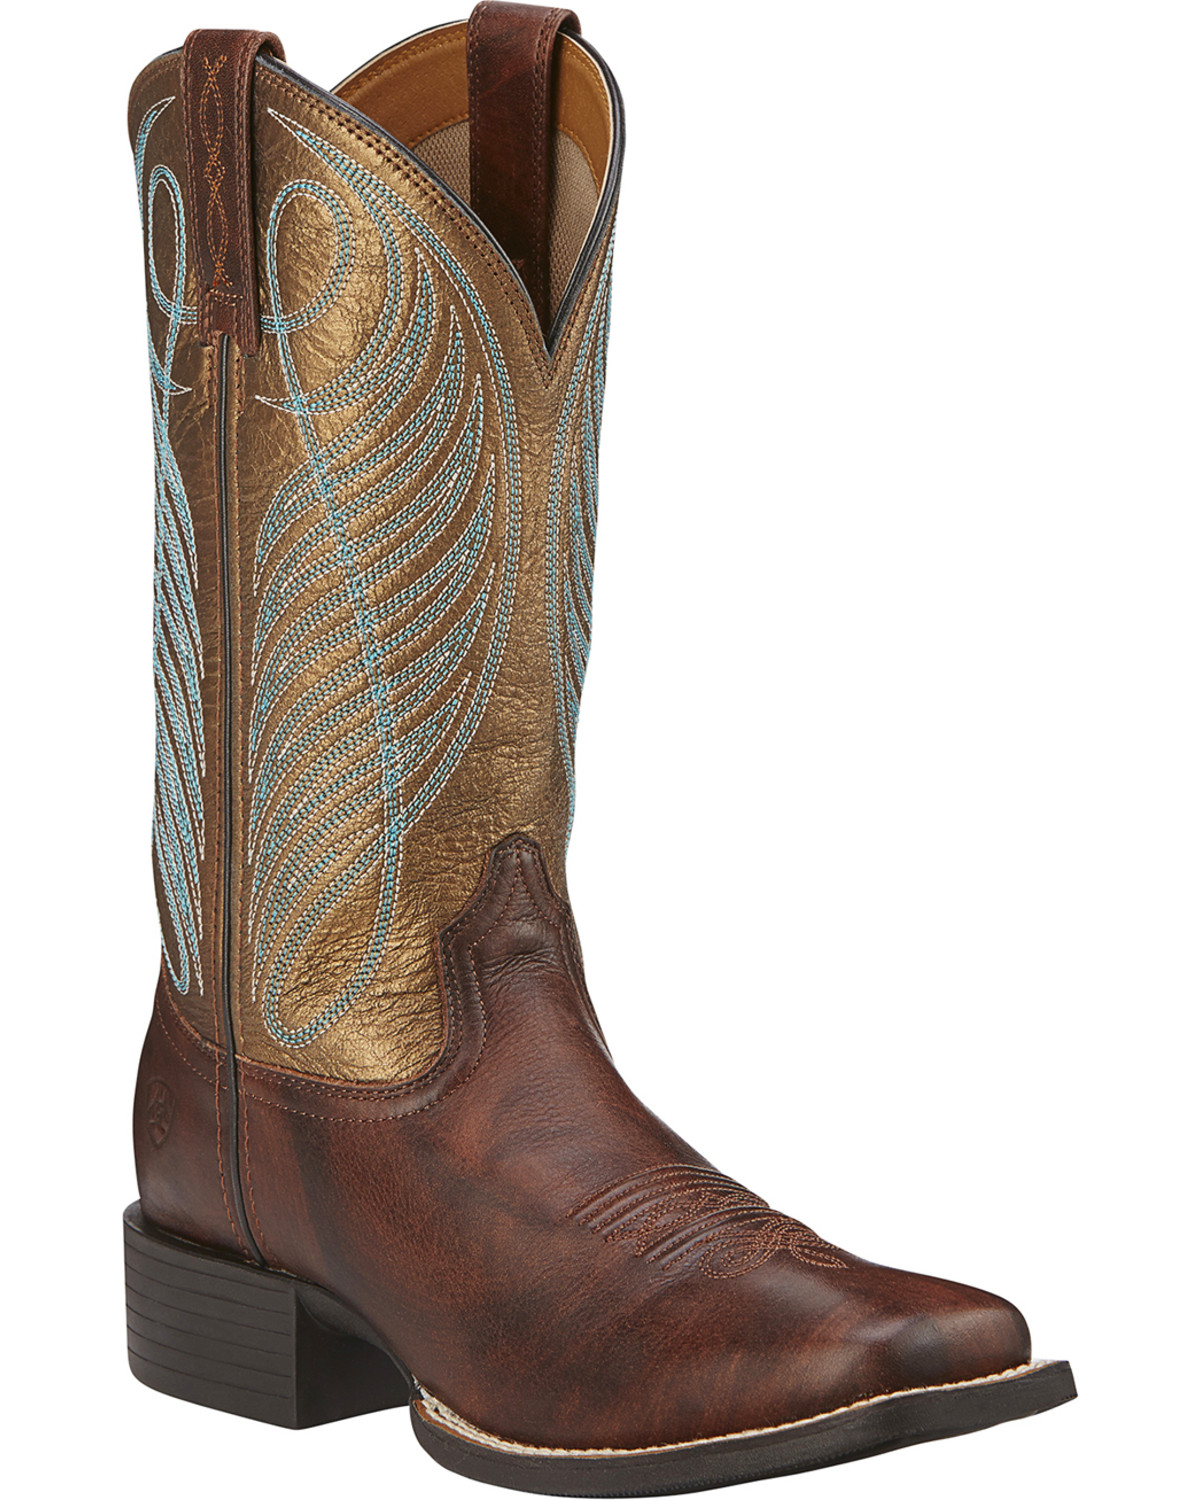 Excellent Ariat Womenu0026#39;s Rich Round Up Remuda Cowgirl Boot Square Toe - 10019907 | EBay